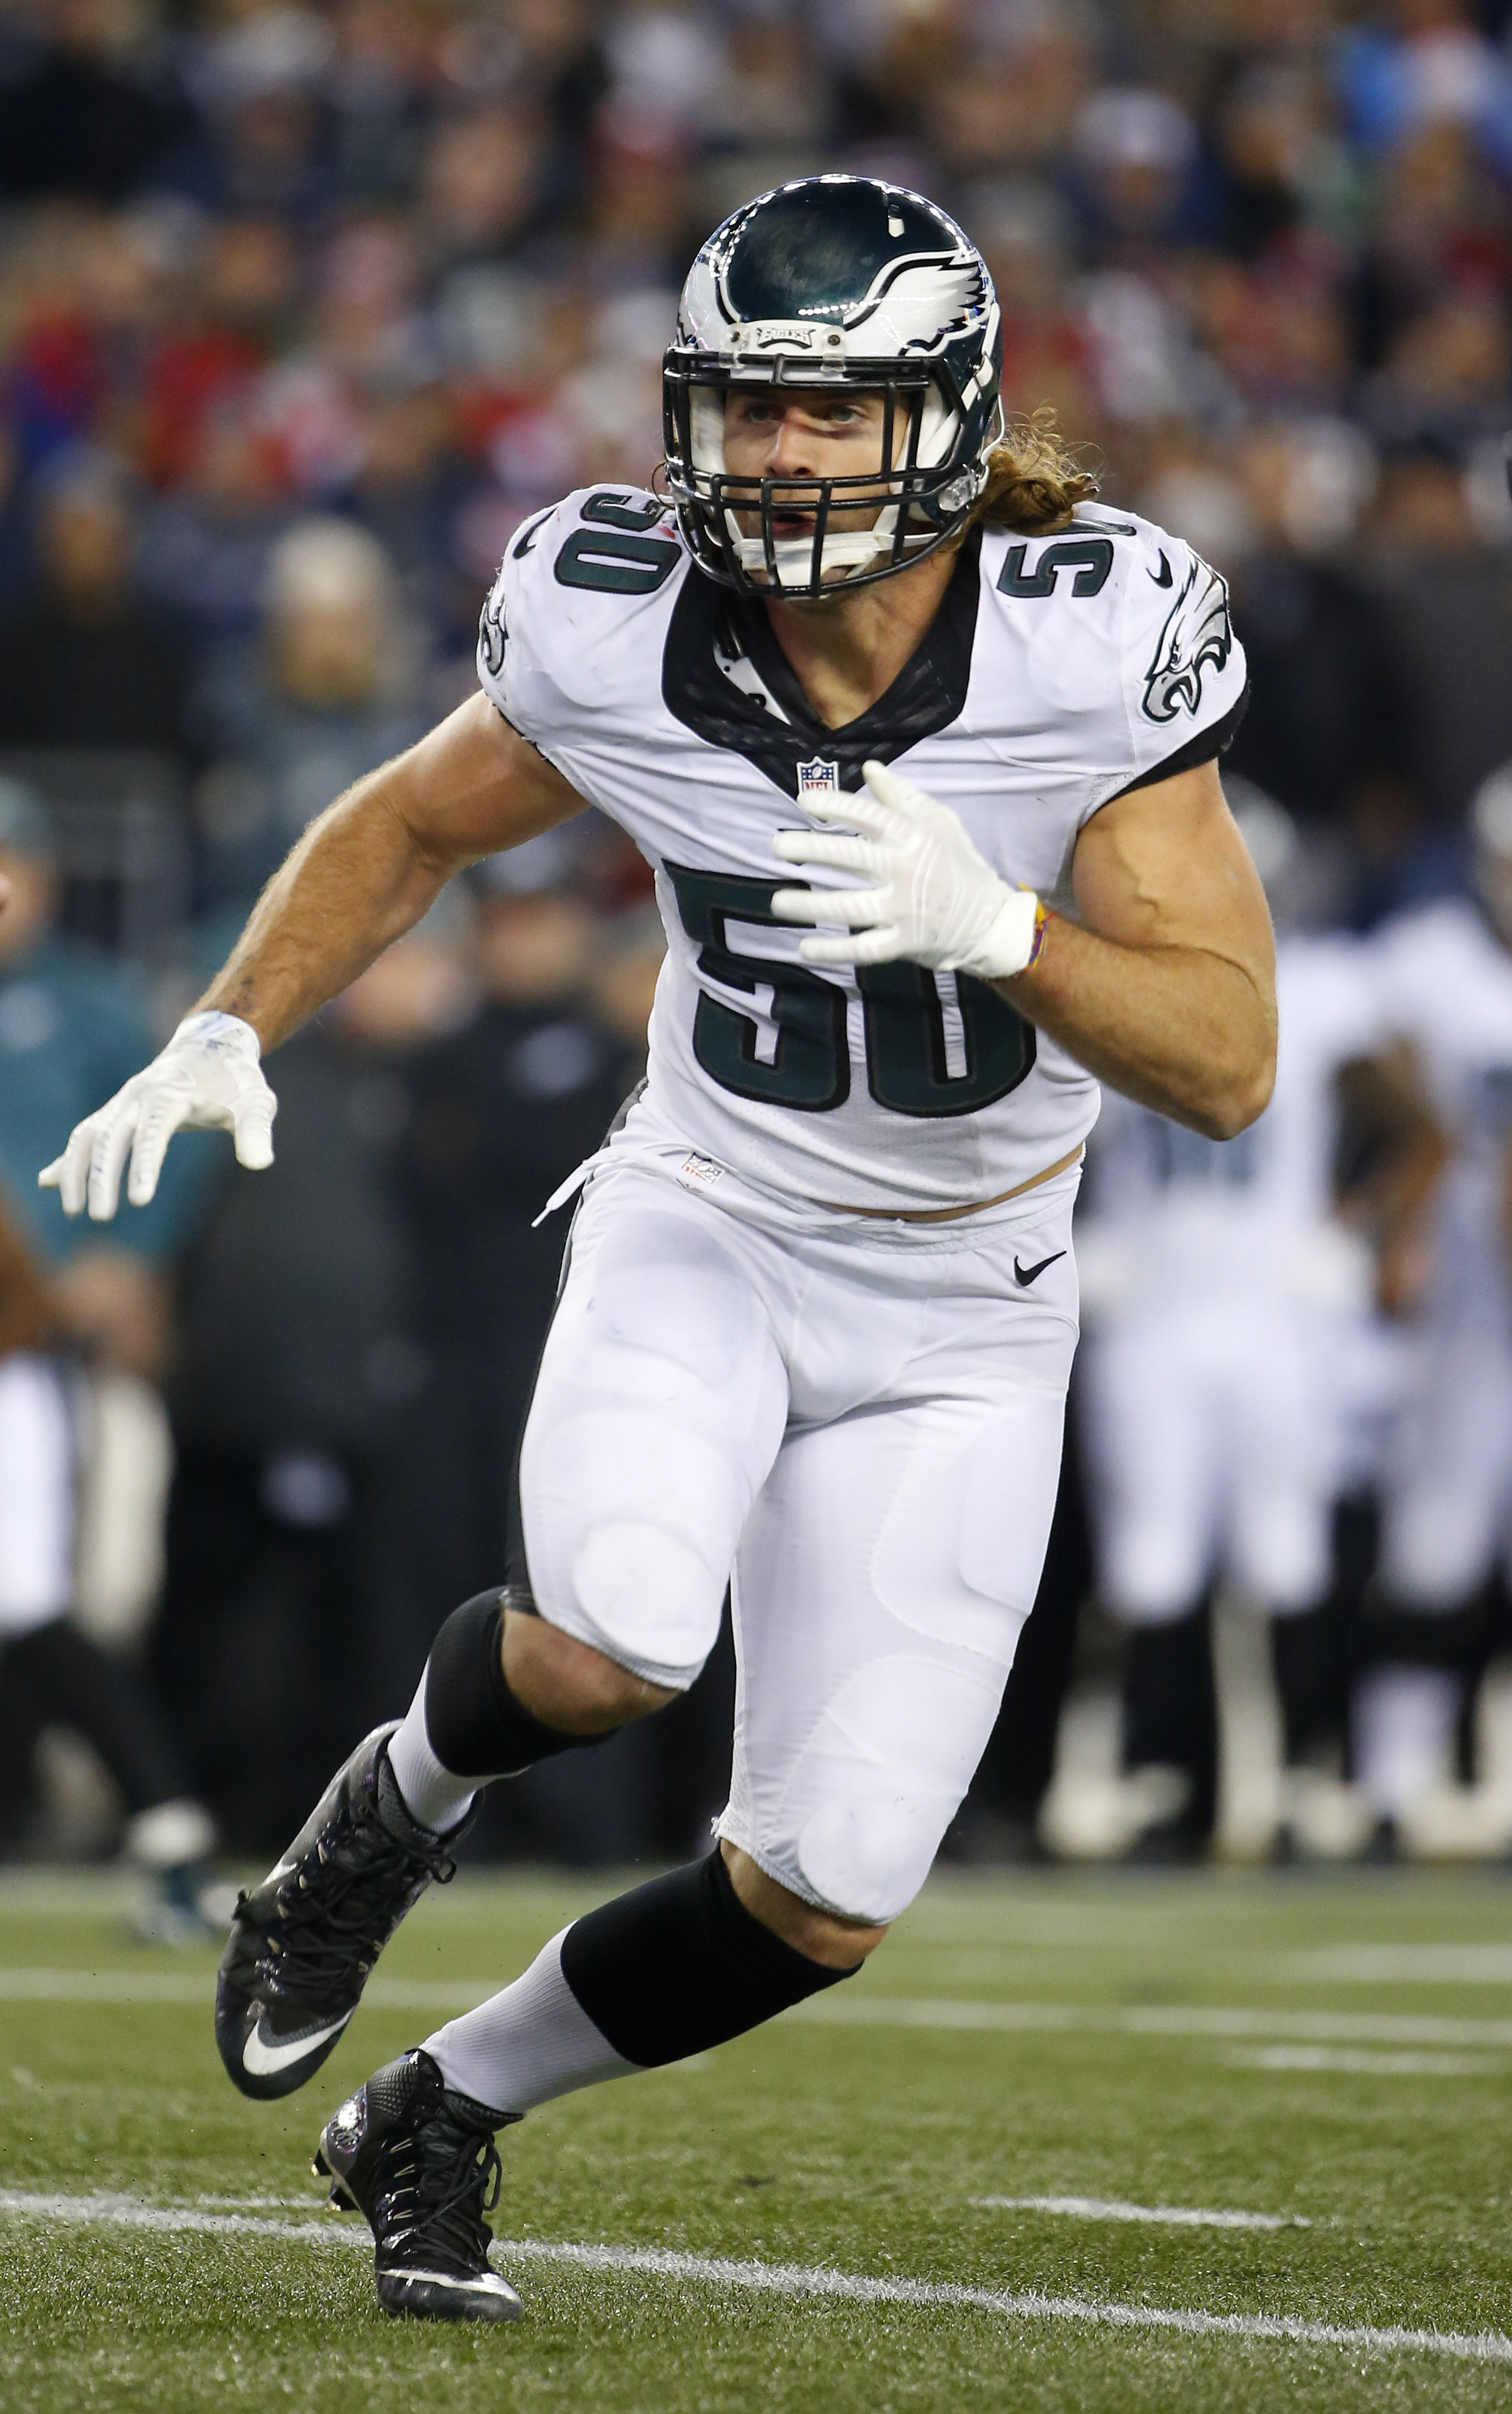 Philadelphia Eagles linebacker Kiko Alonso during a NFL football game against the New England Patriots at Gillette Stadium in Foxborough, Mass.Sunday, Dec. 6, 2015. (Winslow Townson/AP Images for Panini)